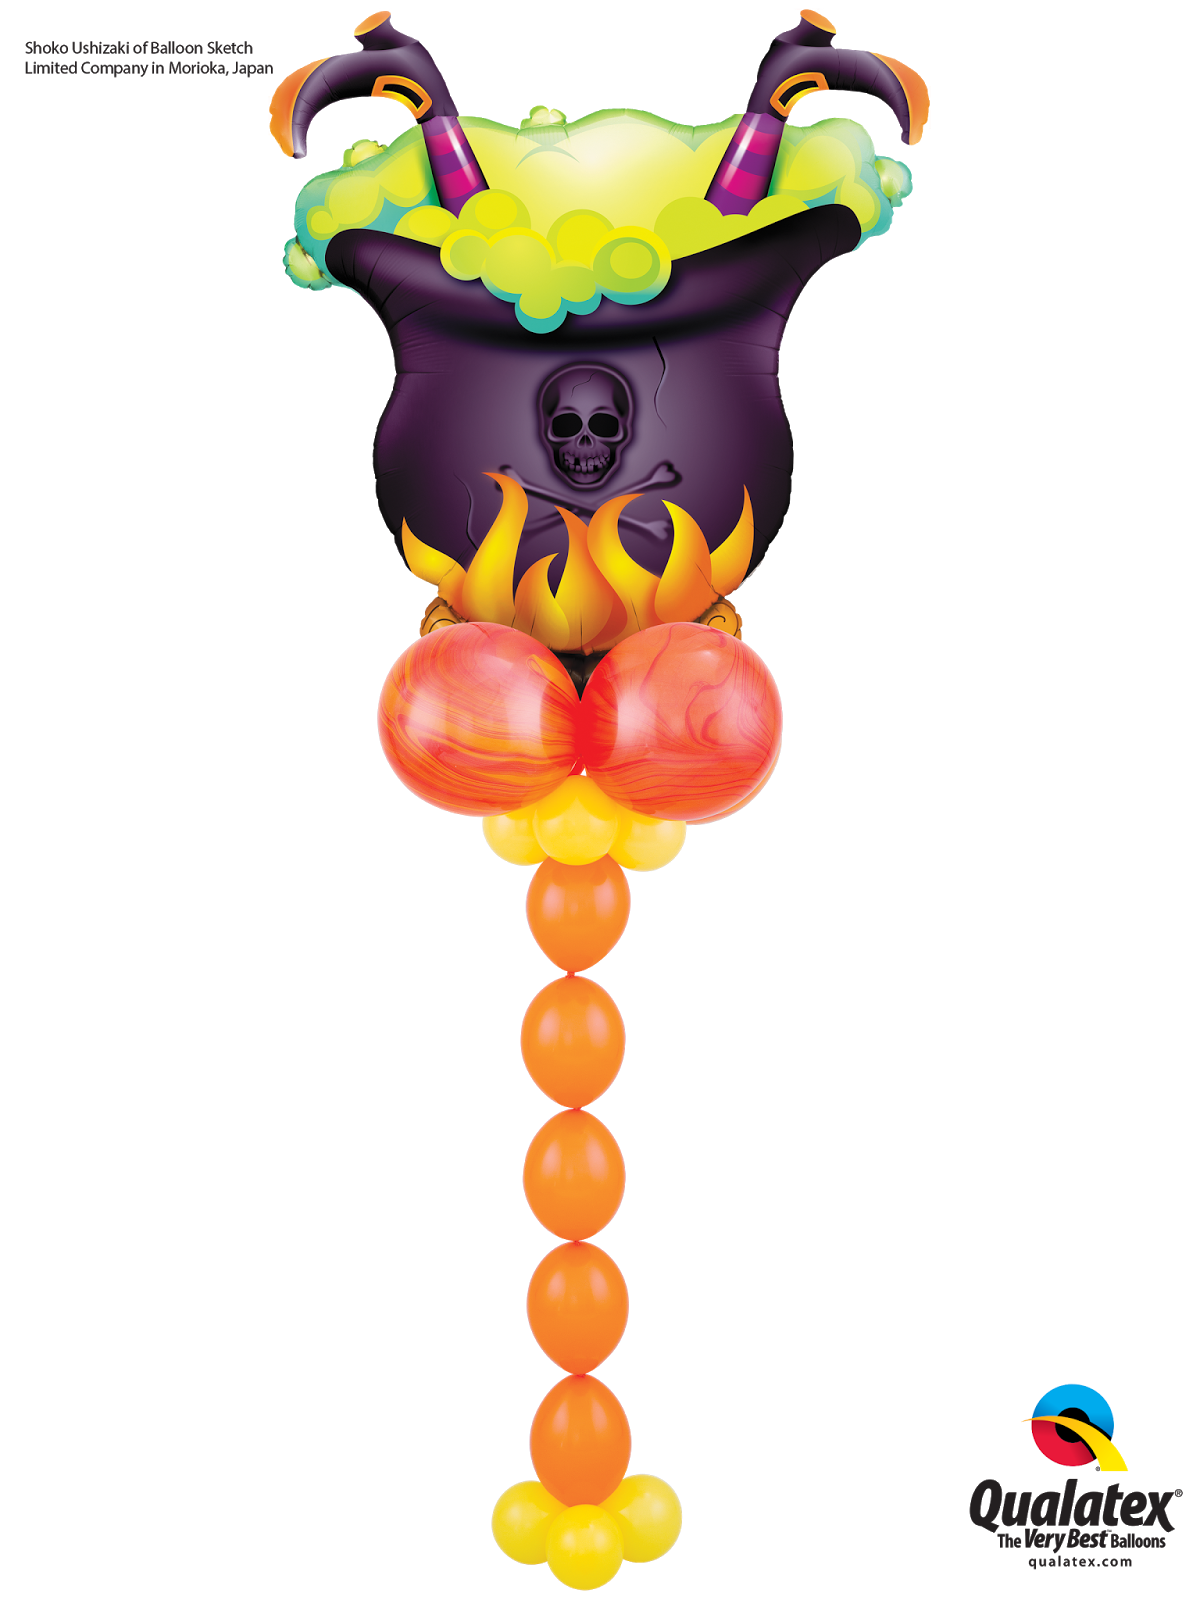 Halloween balloons clipart vector download The Very Best Balloon Blog: Trick or Treat - Inspiration for ... vector download